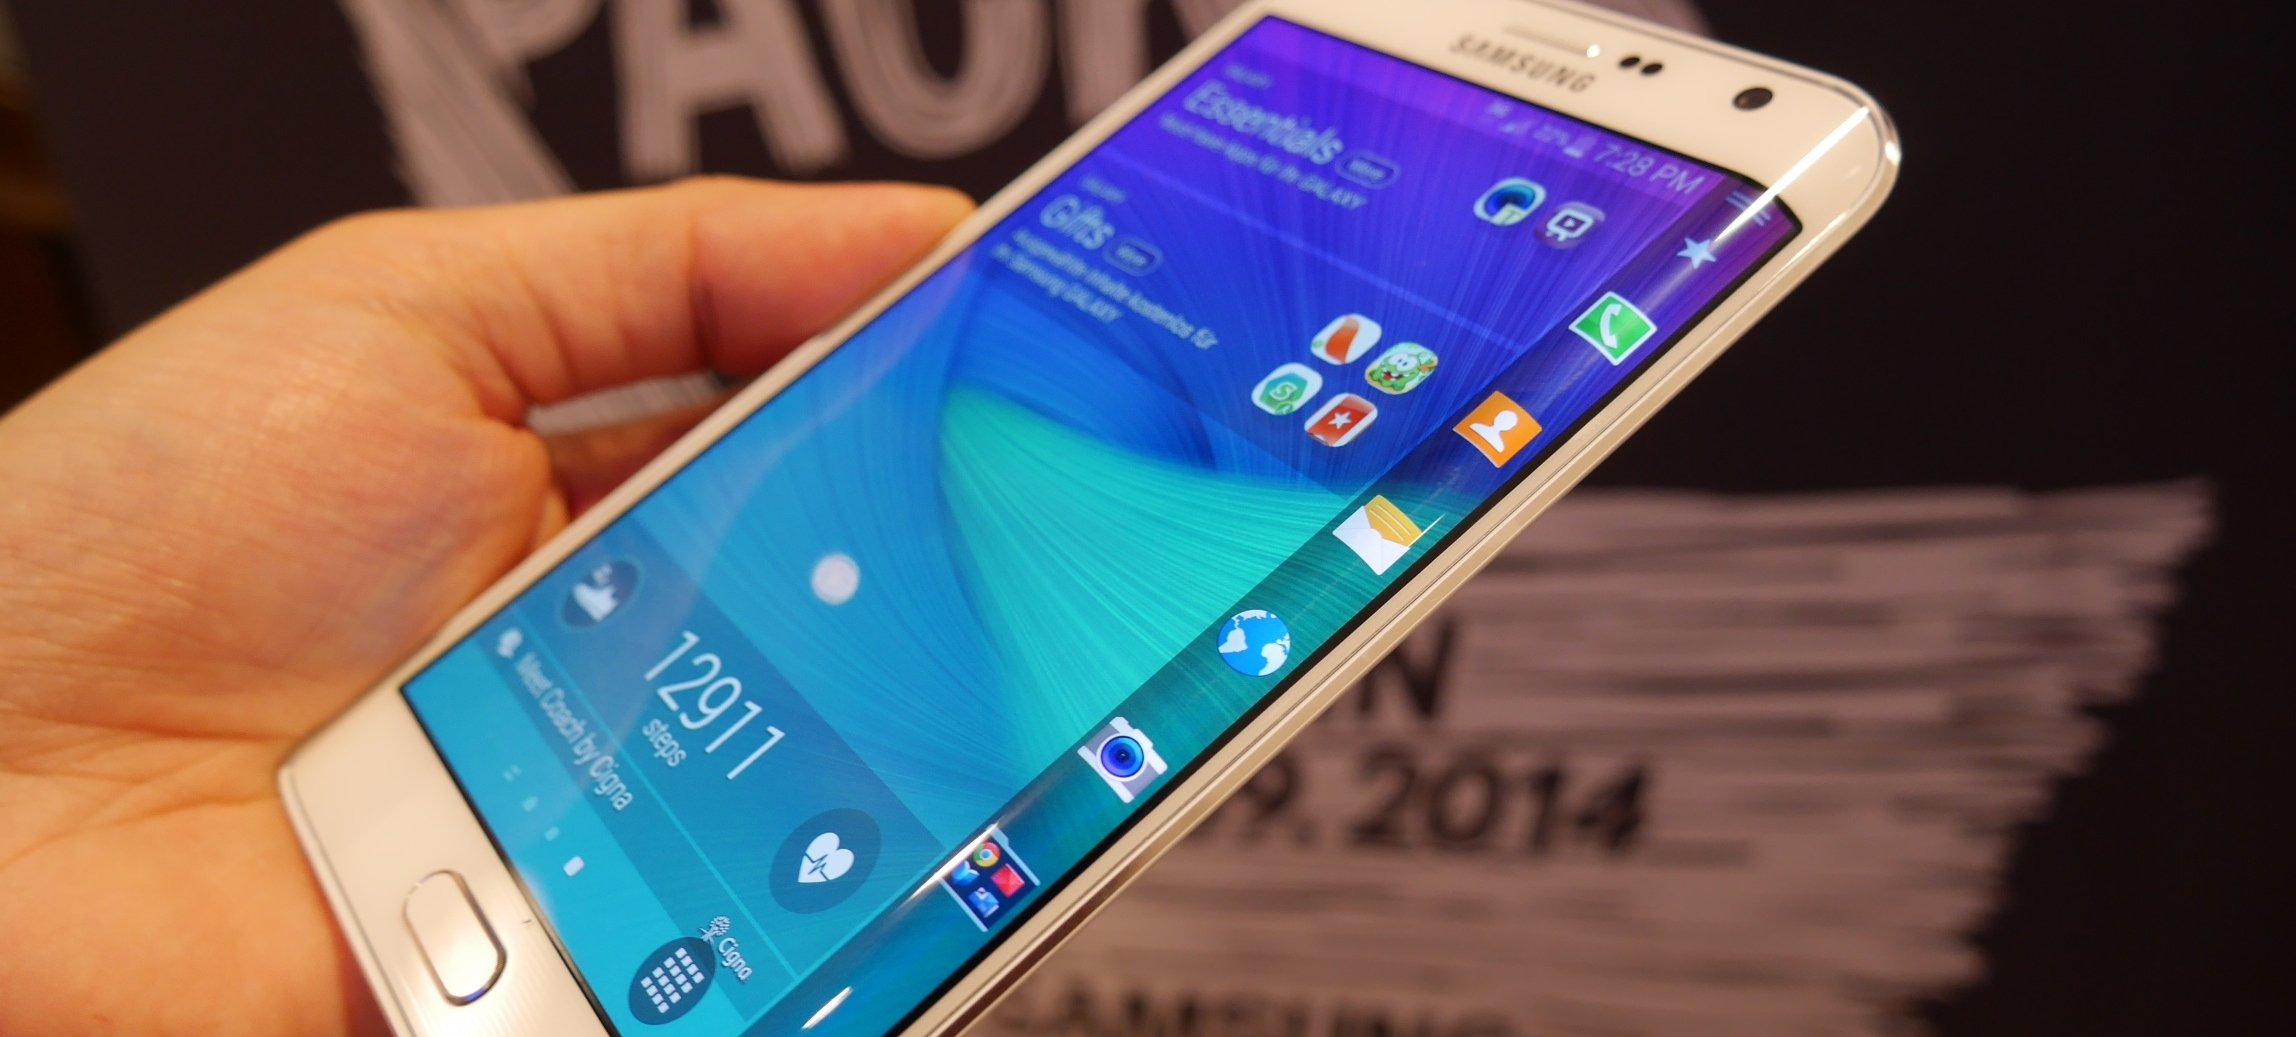 Phone Samsung Android Phones Latest samsung mobile released in 2016 images guru galaxy note edge